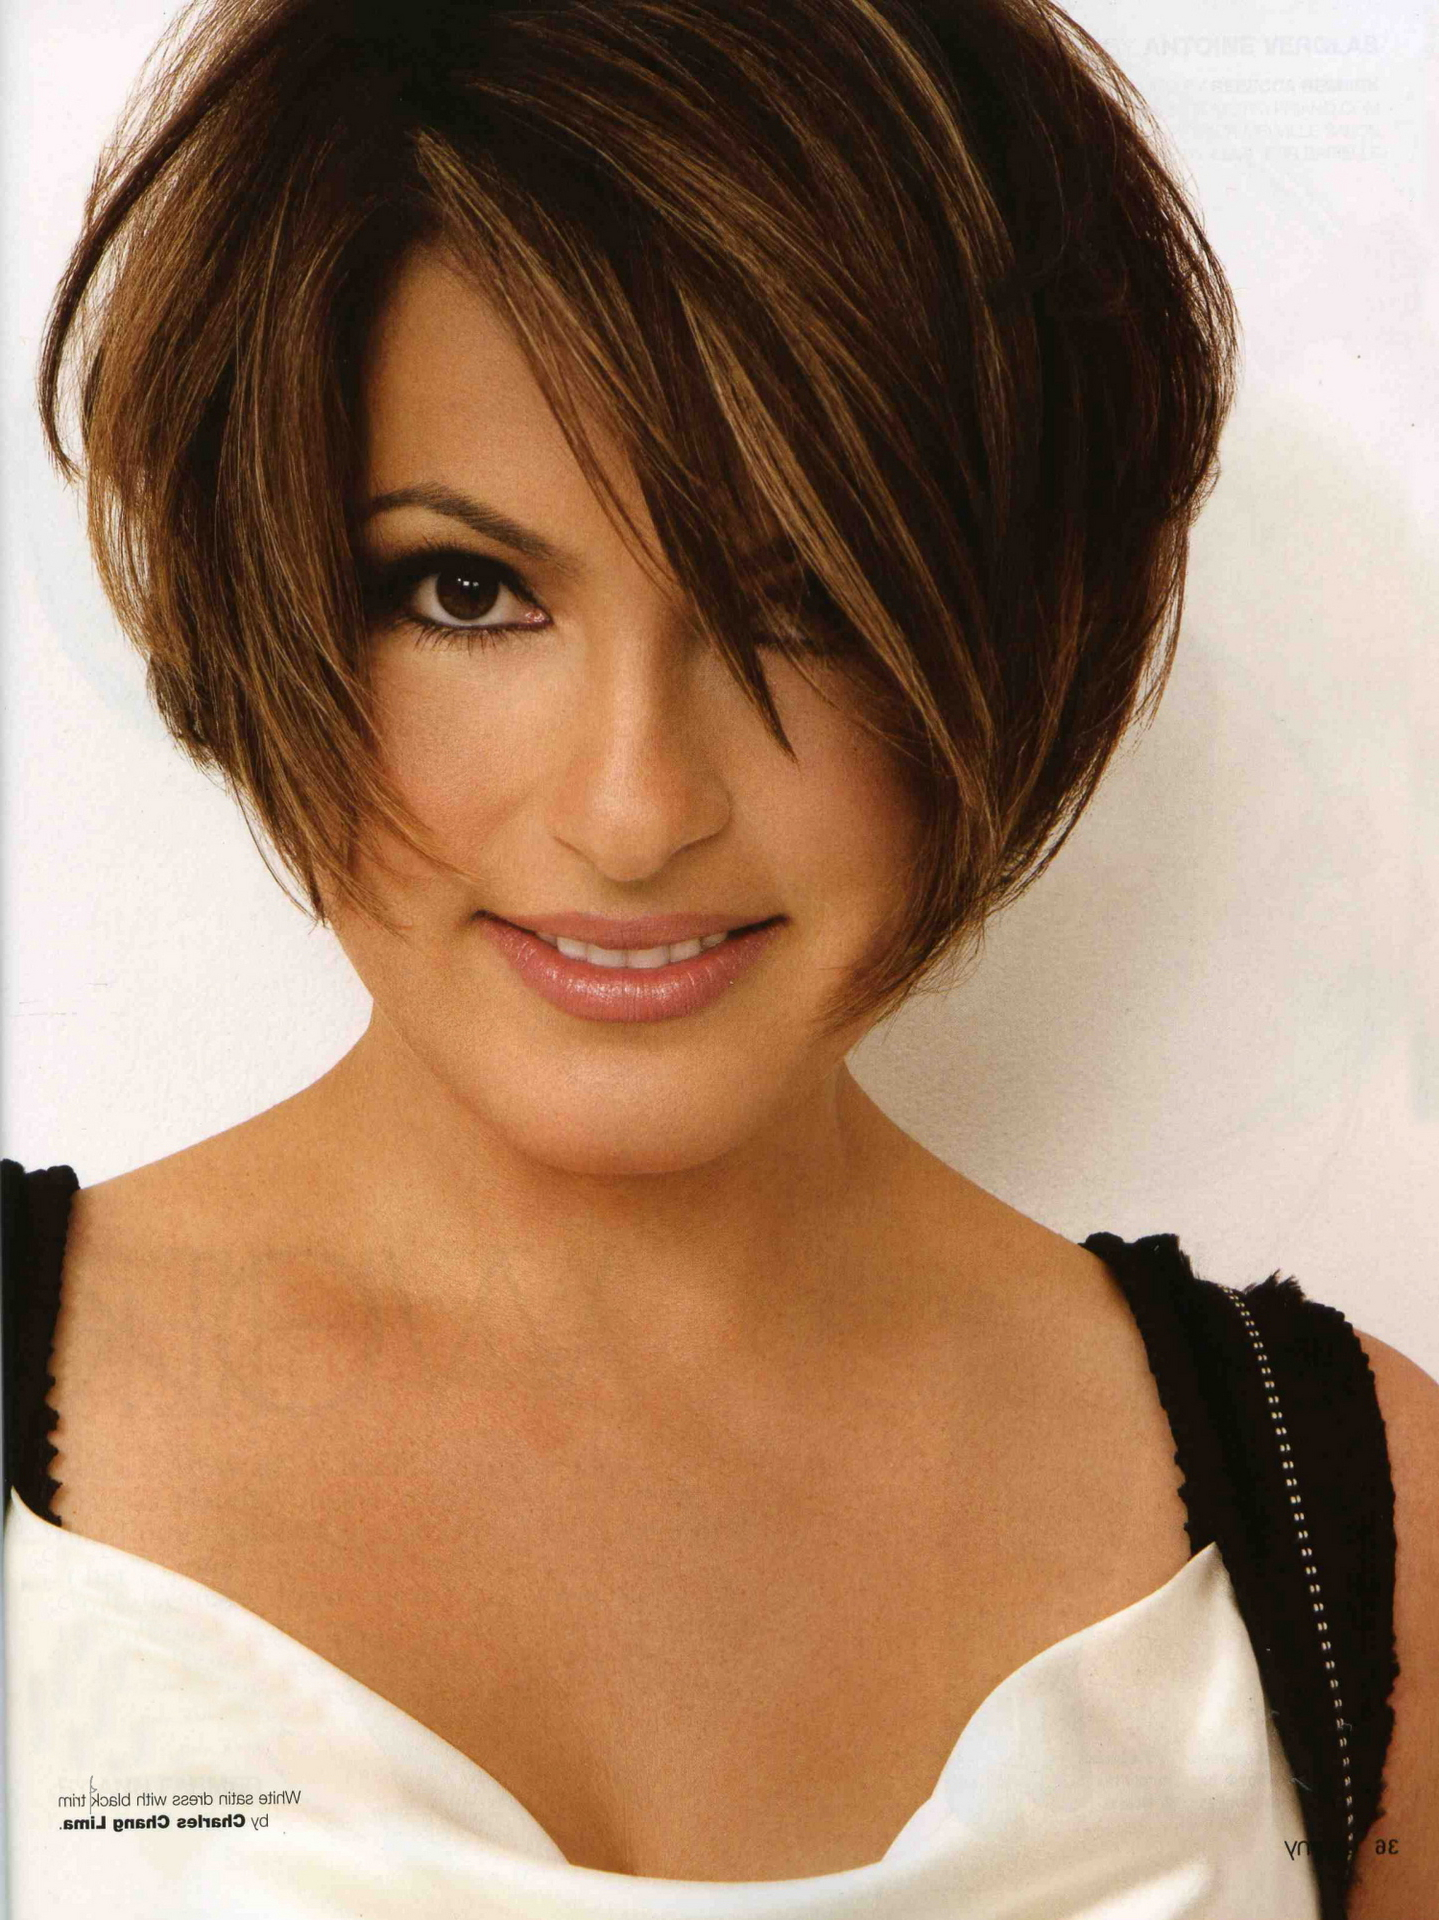 Hair Dilemma: Chop It Off Or Keep It? What Cut? – Haircut Pertaining To Low Maintenance Short Haircuts For Thick Hair (View 16 of 25)